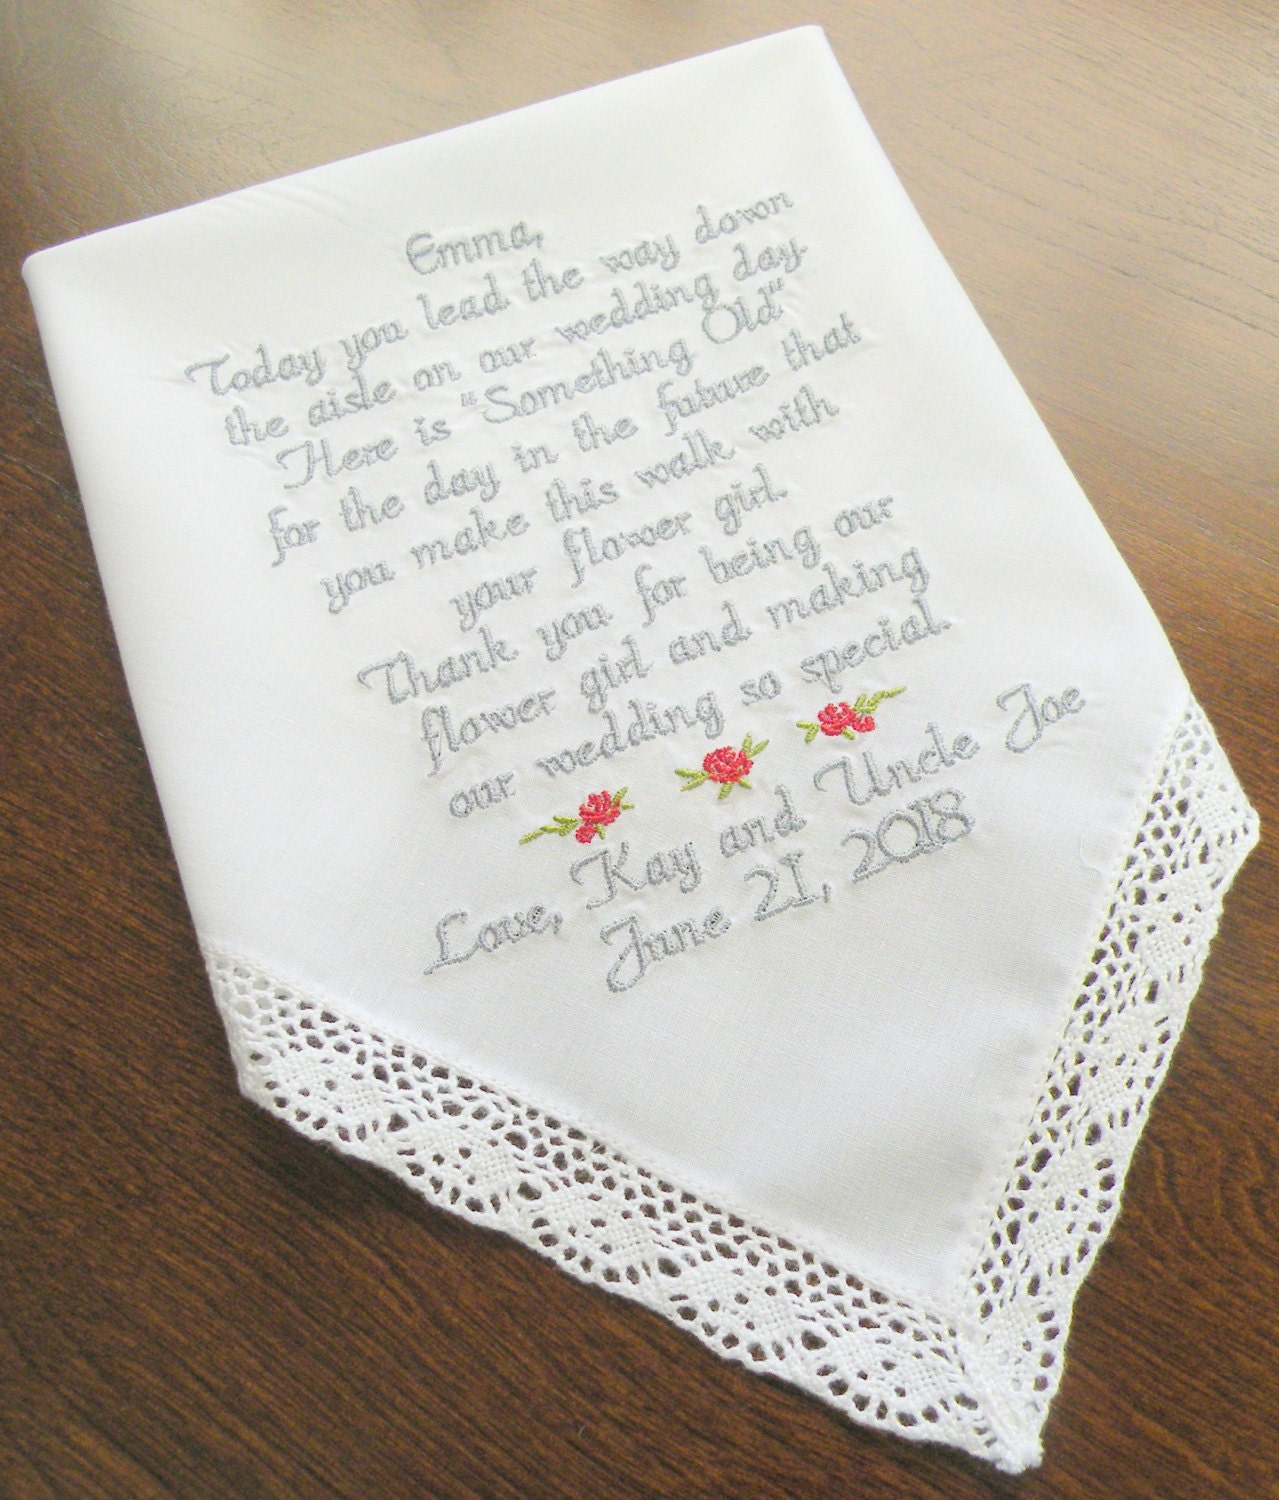 Flowers For Wedding Gift: Flower Girl Wedding Gift Wedding Gifts For Flower Girls